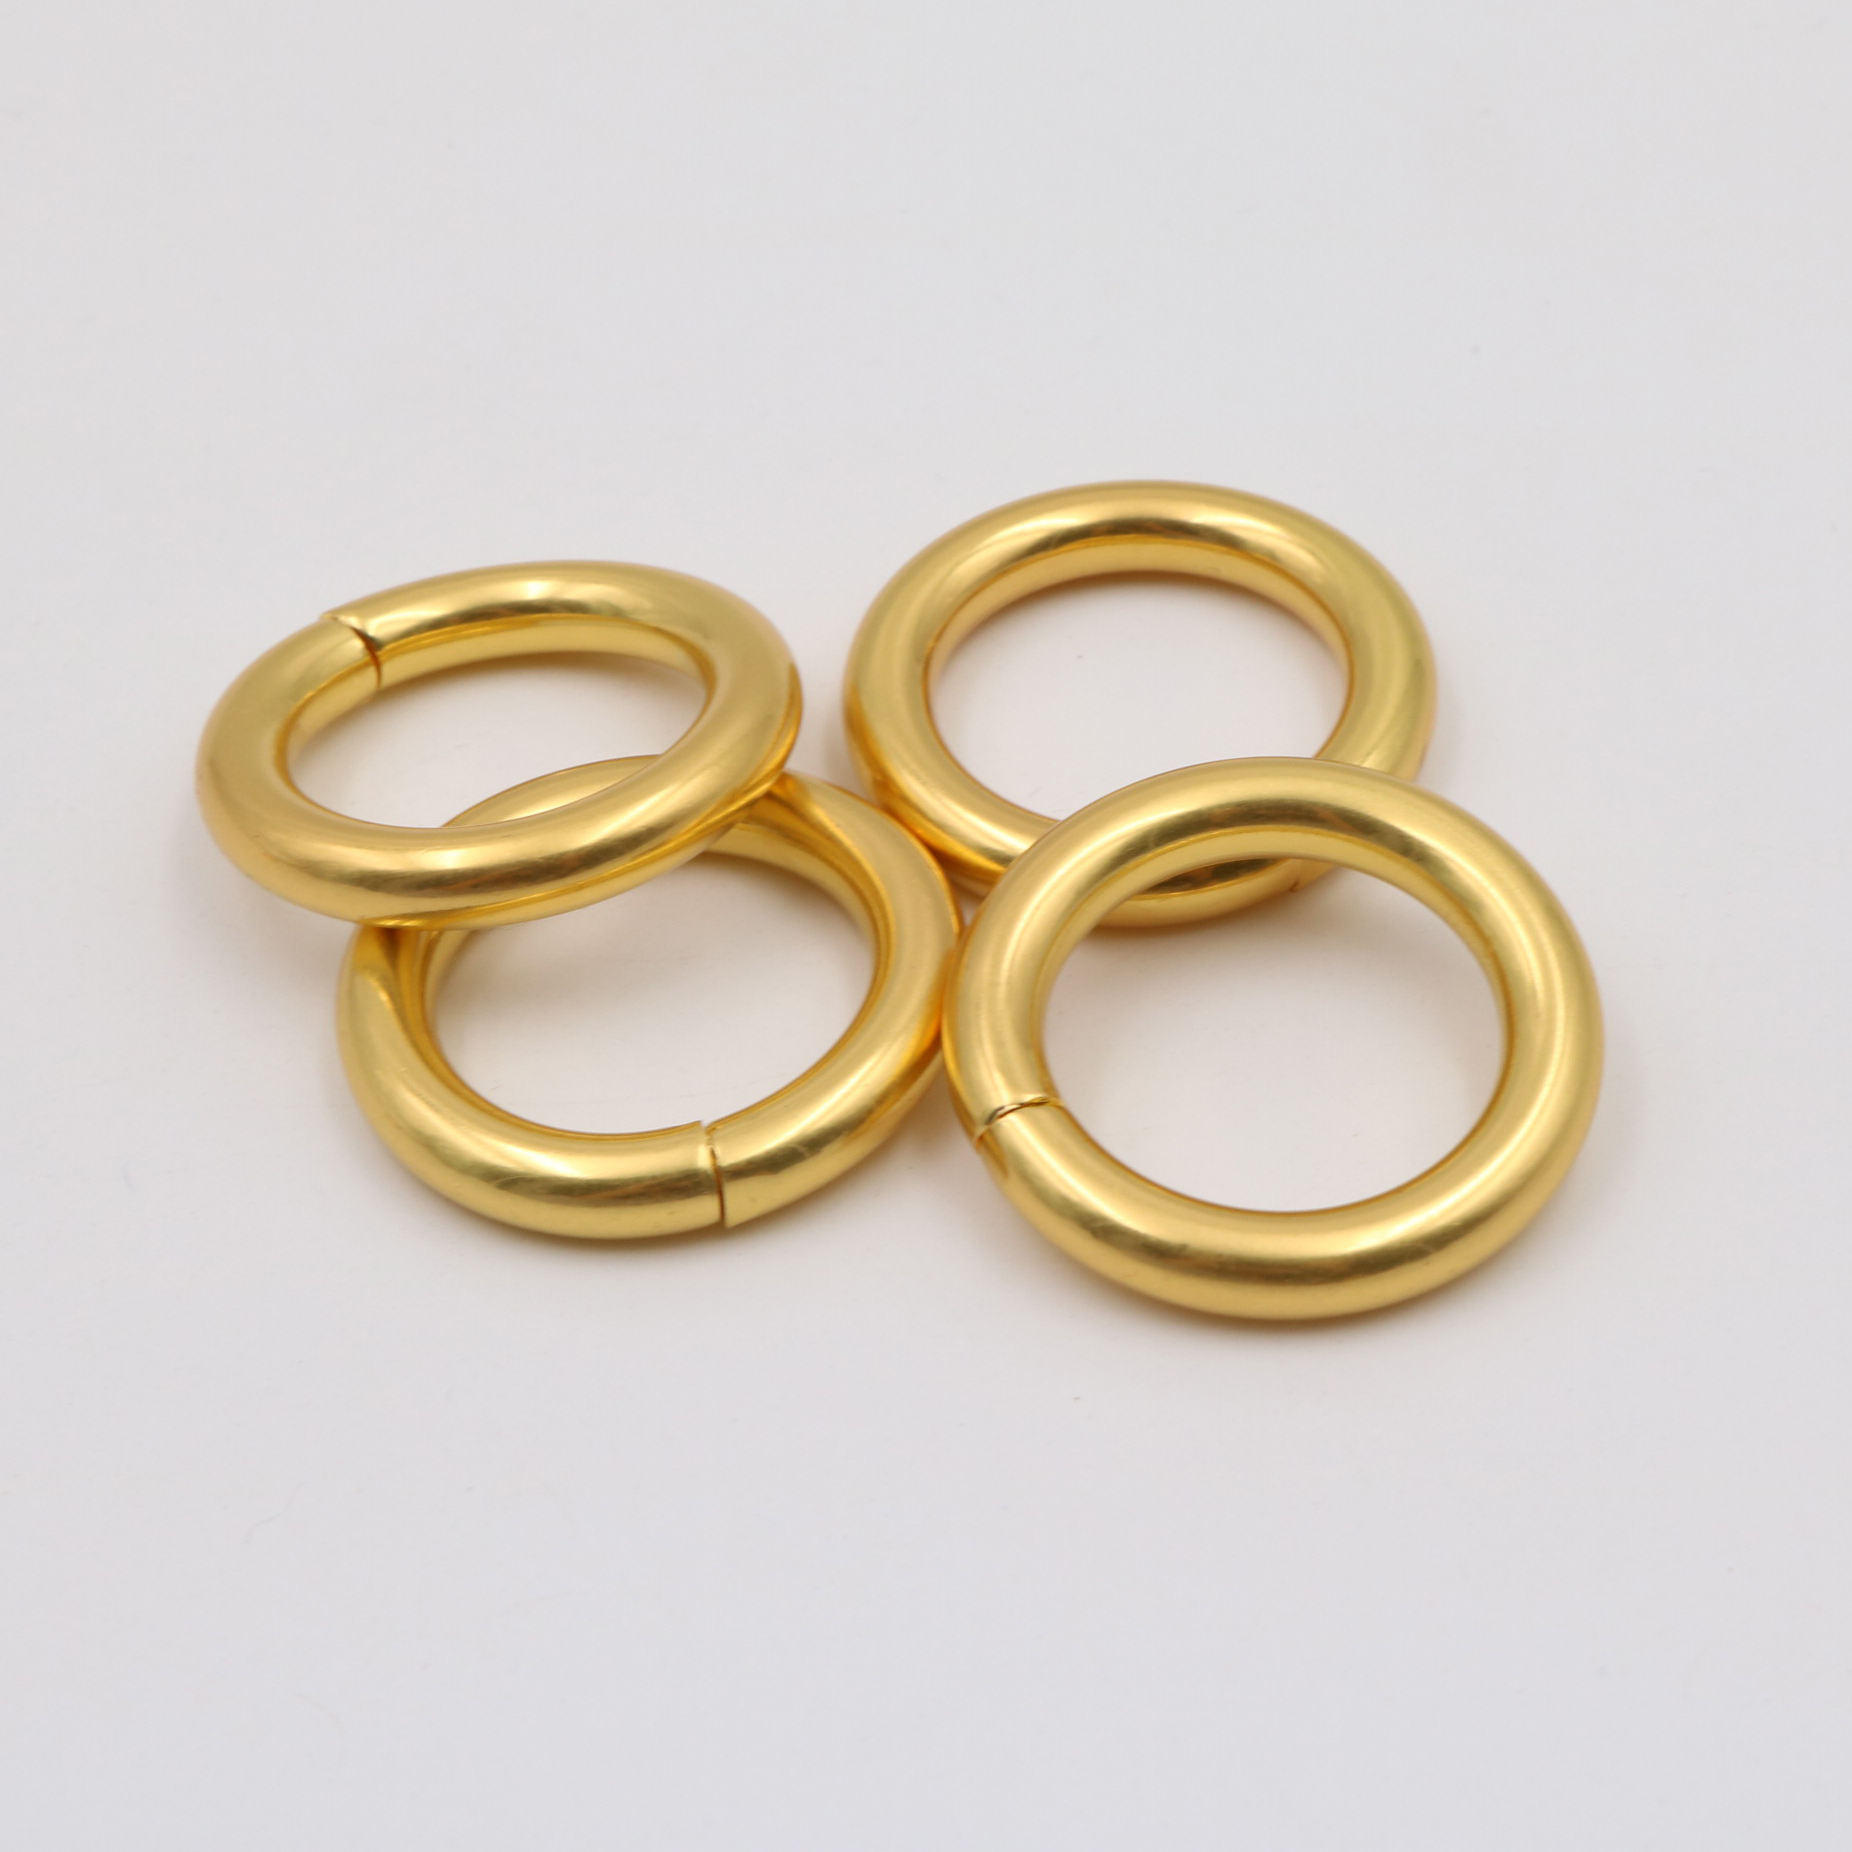 Custom Metal Zinc Alloy Golden Gold O-ring o ring Bag Hardware Handbag Accessory for handbag handle